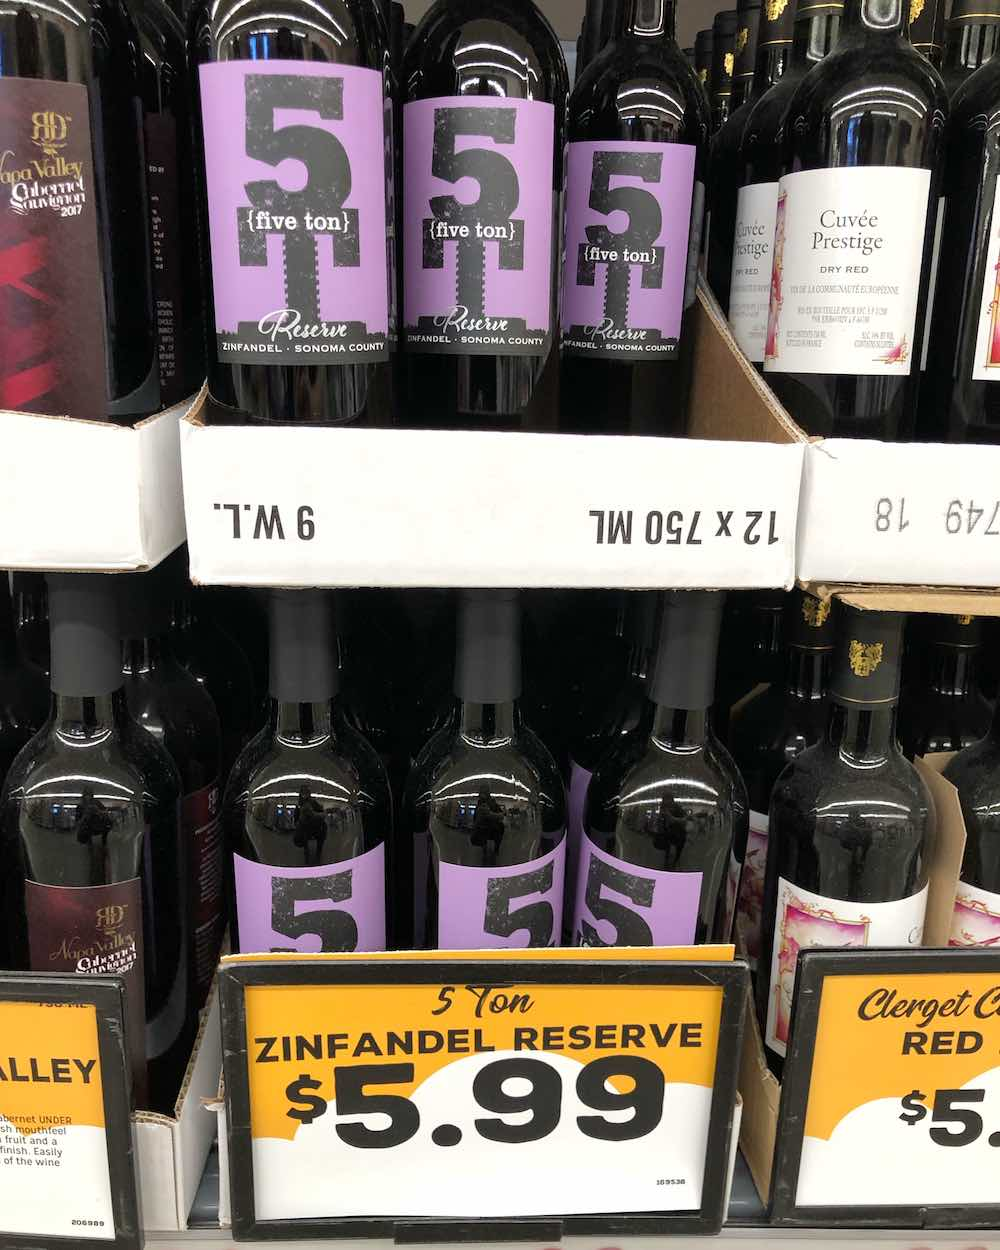 Grocery Outlet Wine - Five Ton Reserve Sonoma County Zinfandel